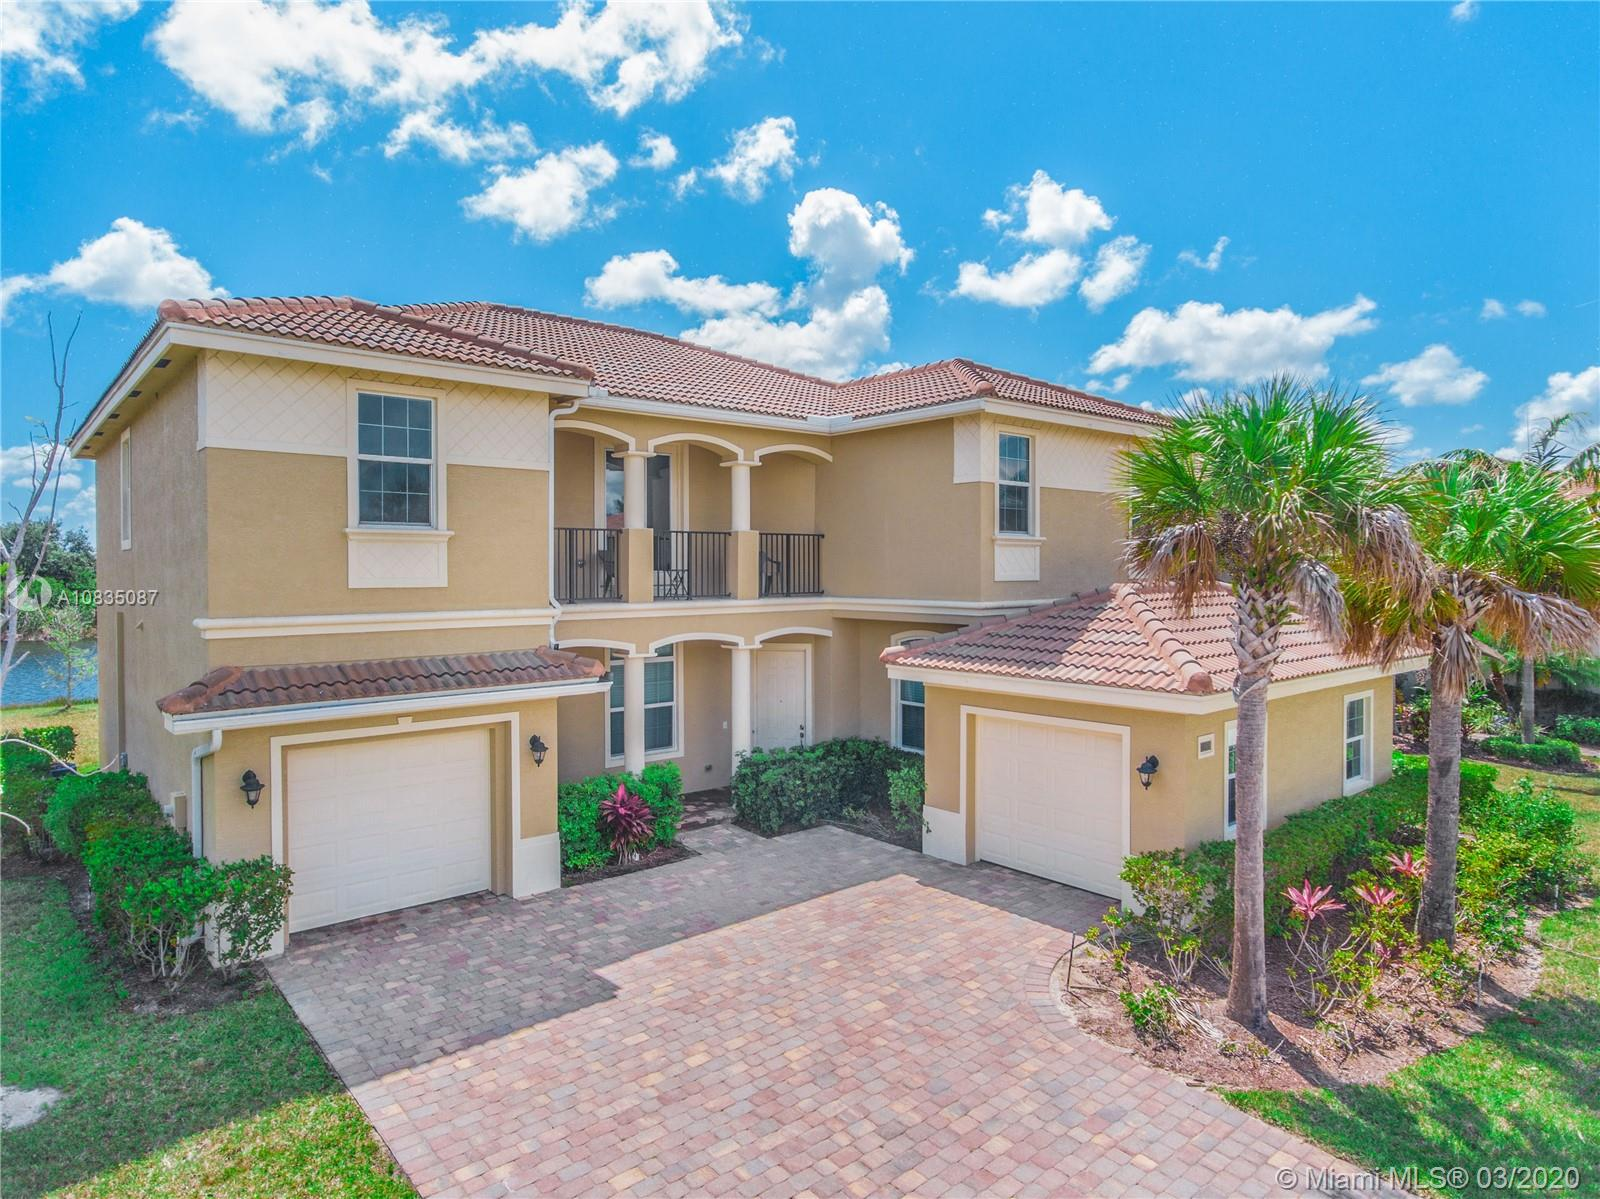 12075 SW Aventino Dr, Port St. Lucie, FL 34987